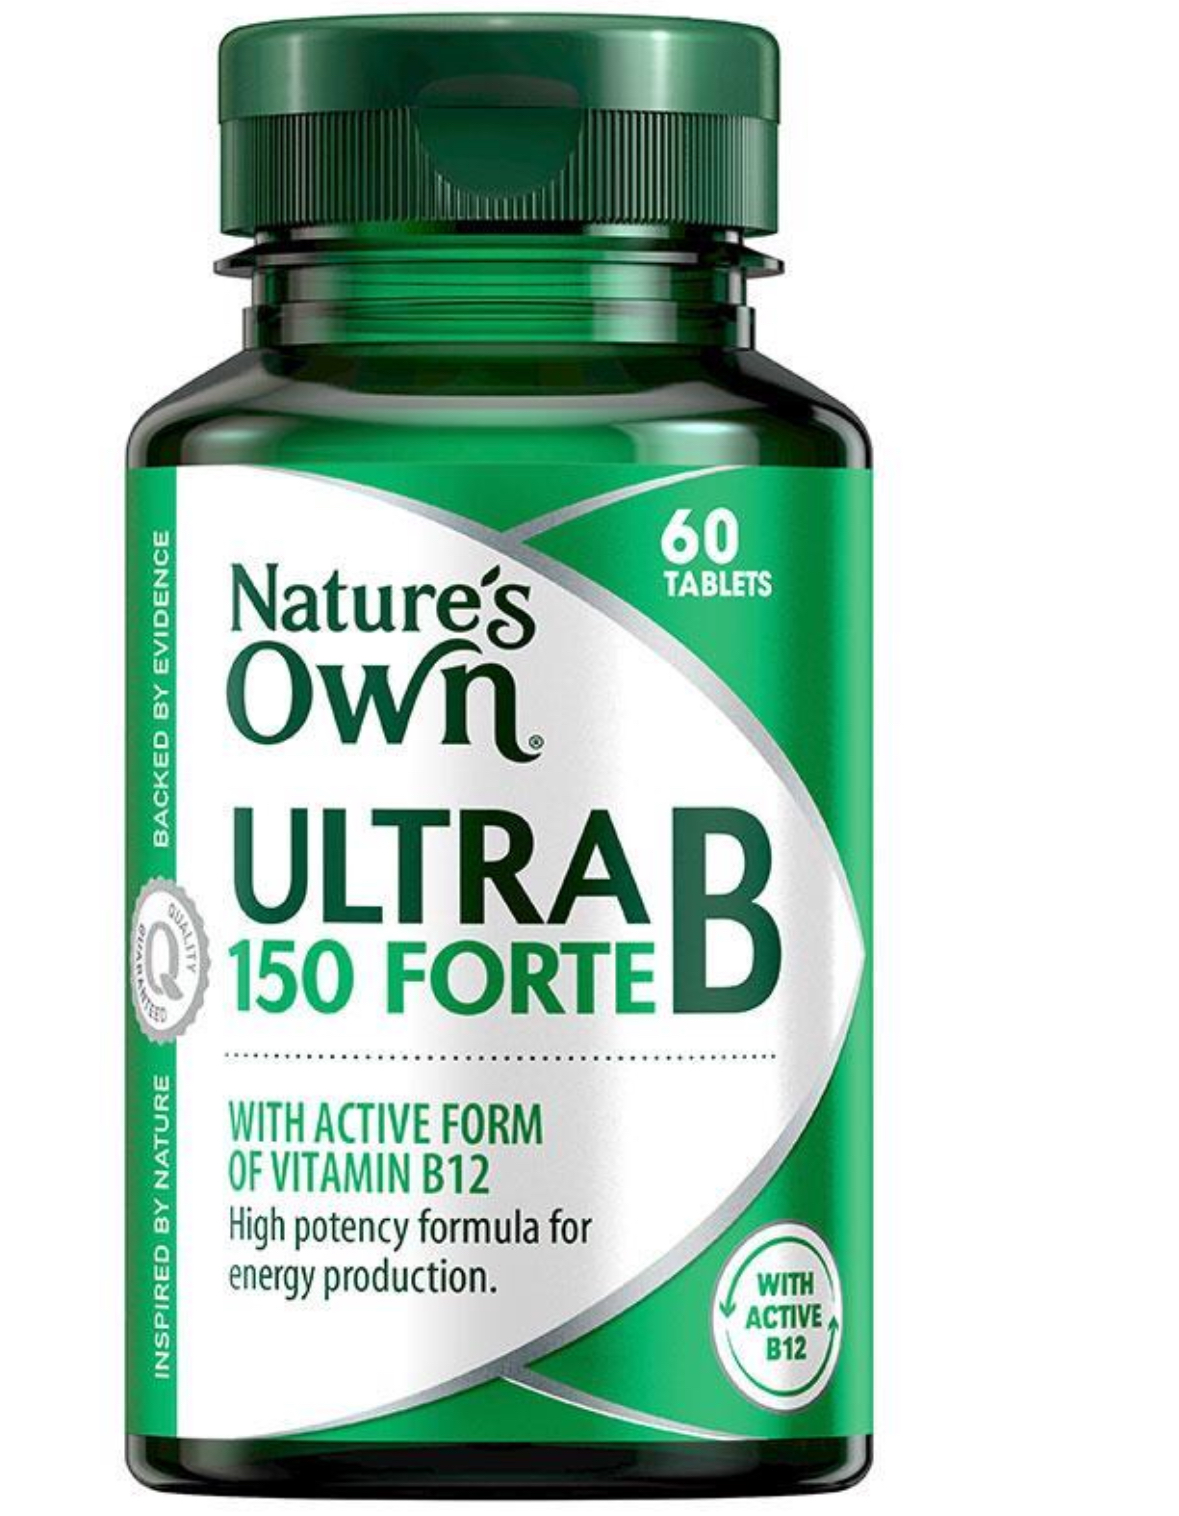 nature-own-ultra-b-150-forte-60tabs-with-active-b12-formerly-mega-b